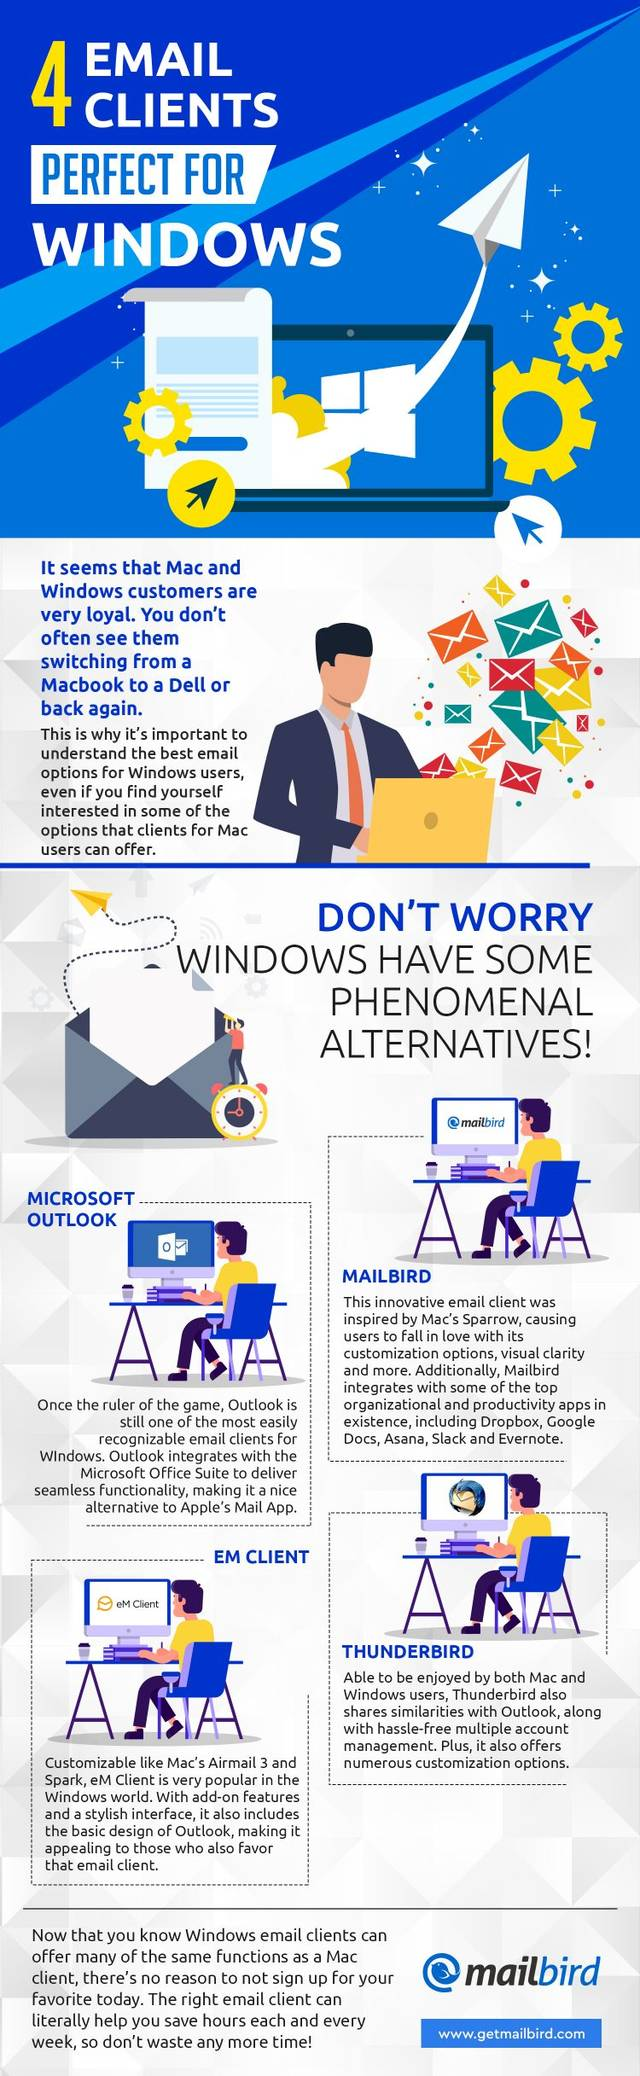 4 email clients perfect for windows e1562734794547